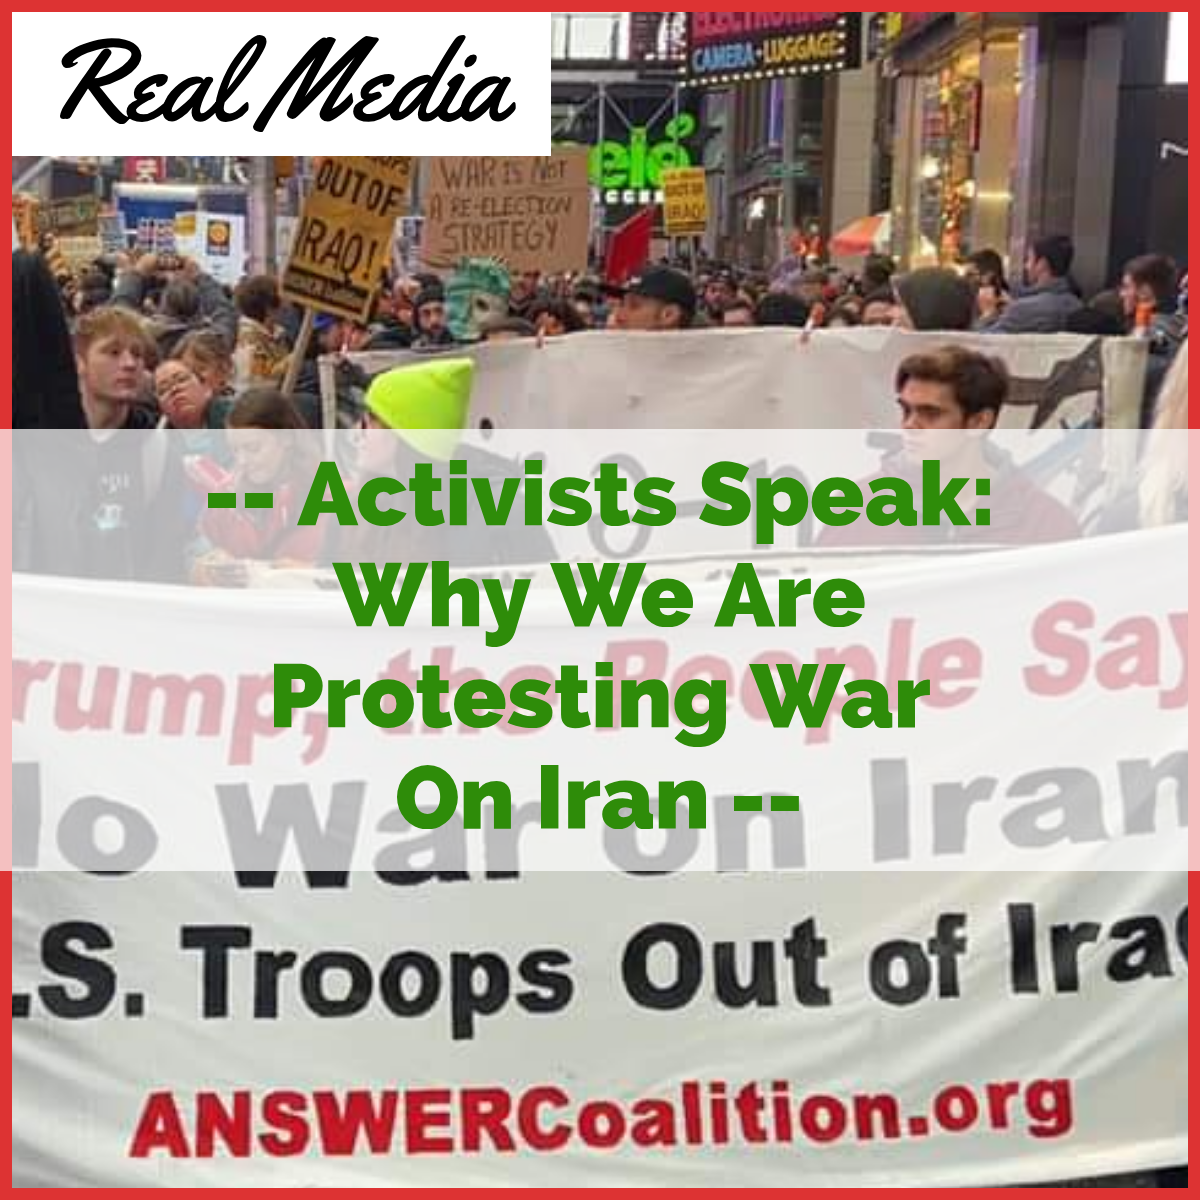 Activists Speak: Why We Are Protesting Against a War on Iran